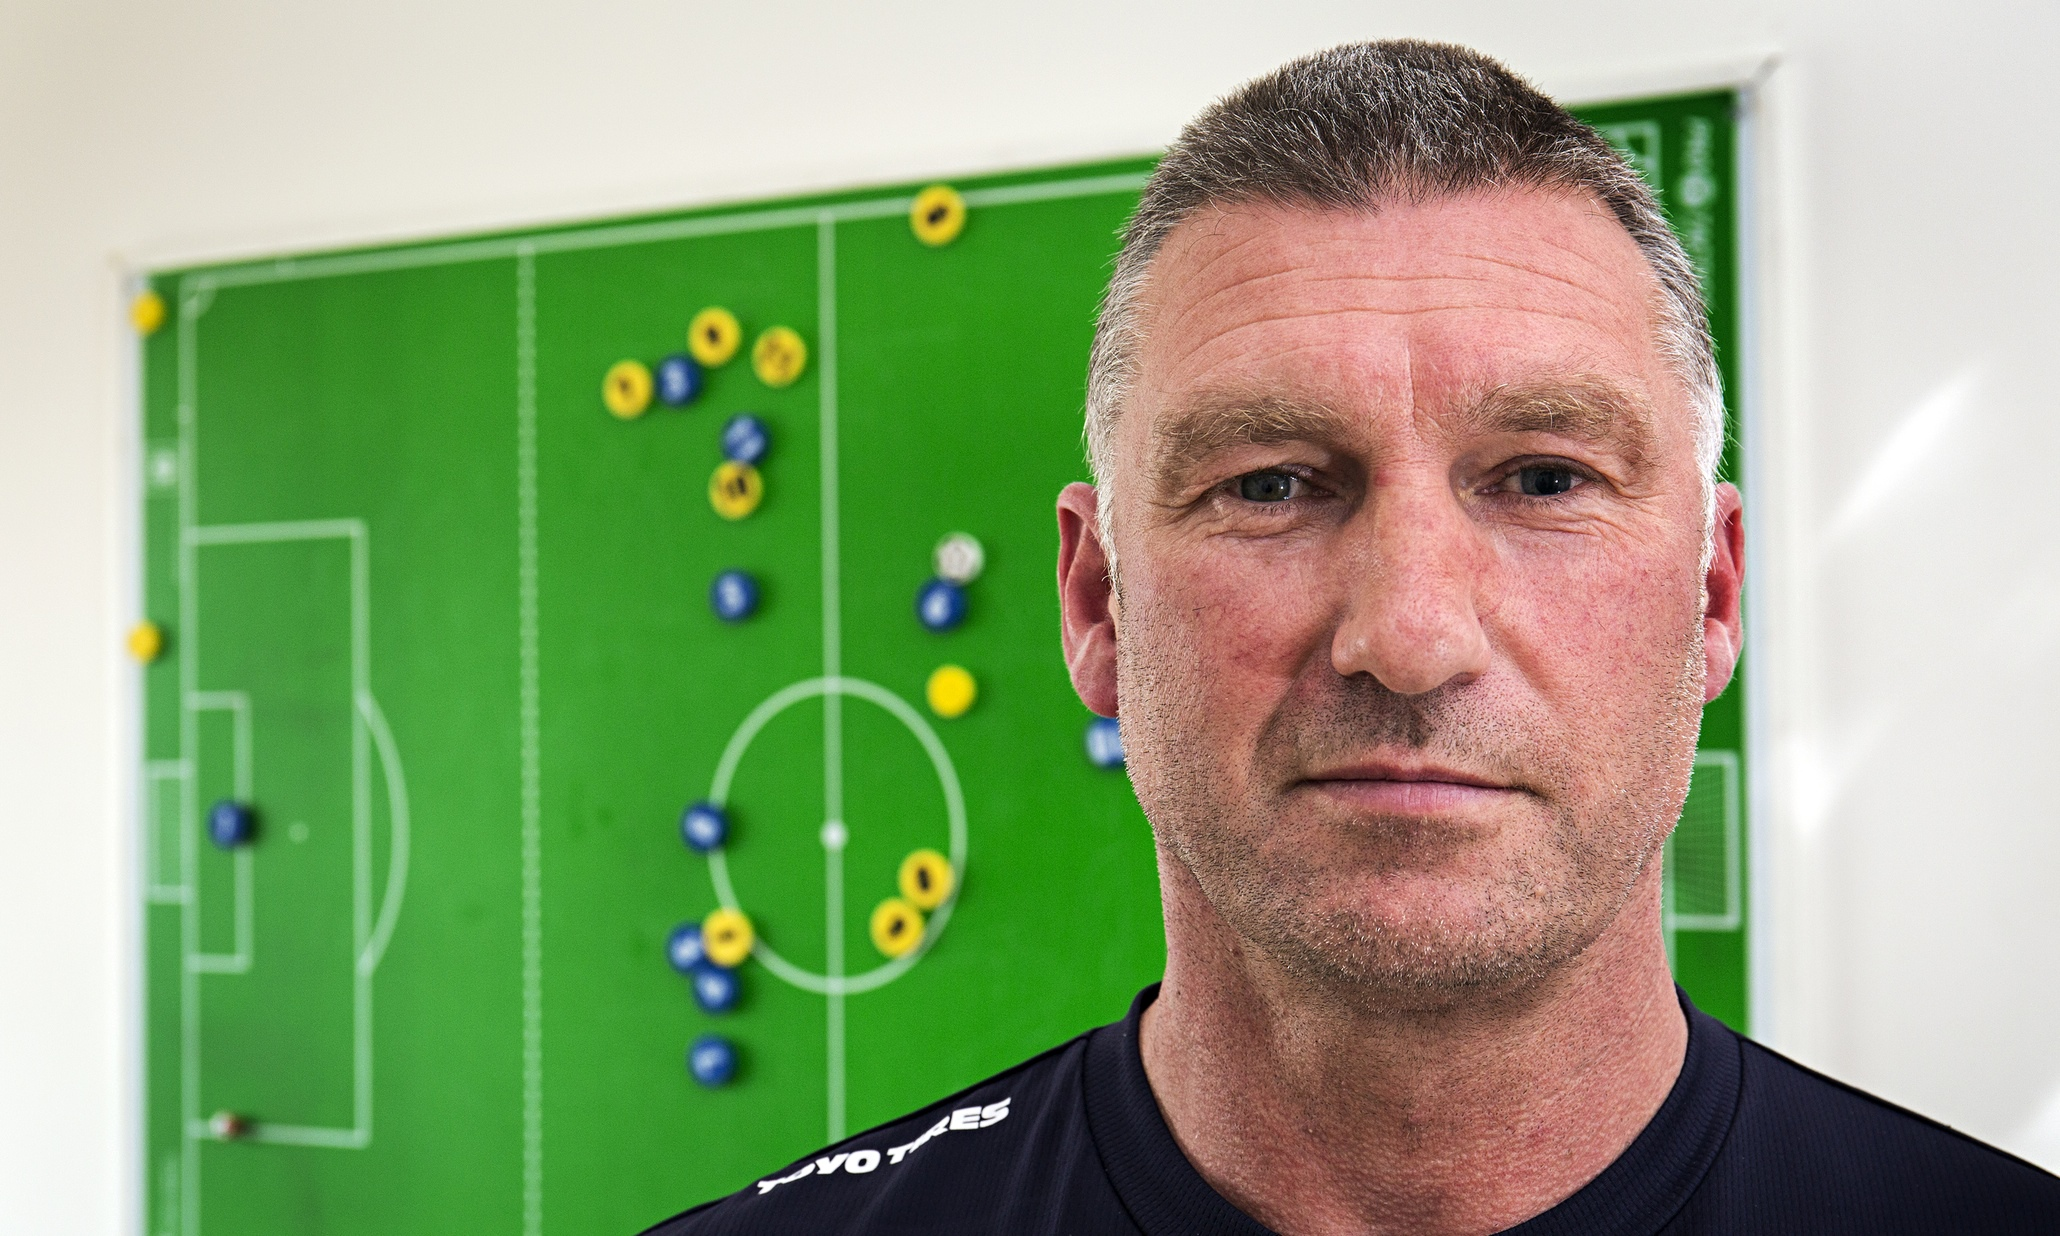 http://static.guim.co.uk/sys-images/Sport/Pix/pictures/2015/4/23/1429808585420/Nigel-Pearson-009.jpg